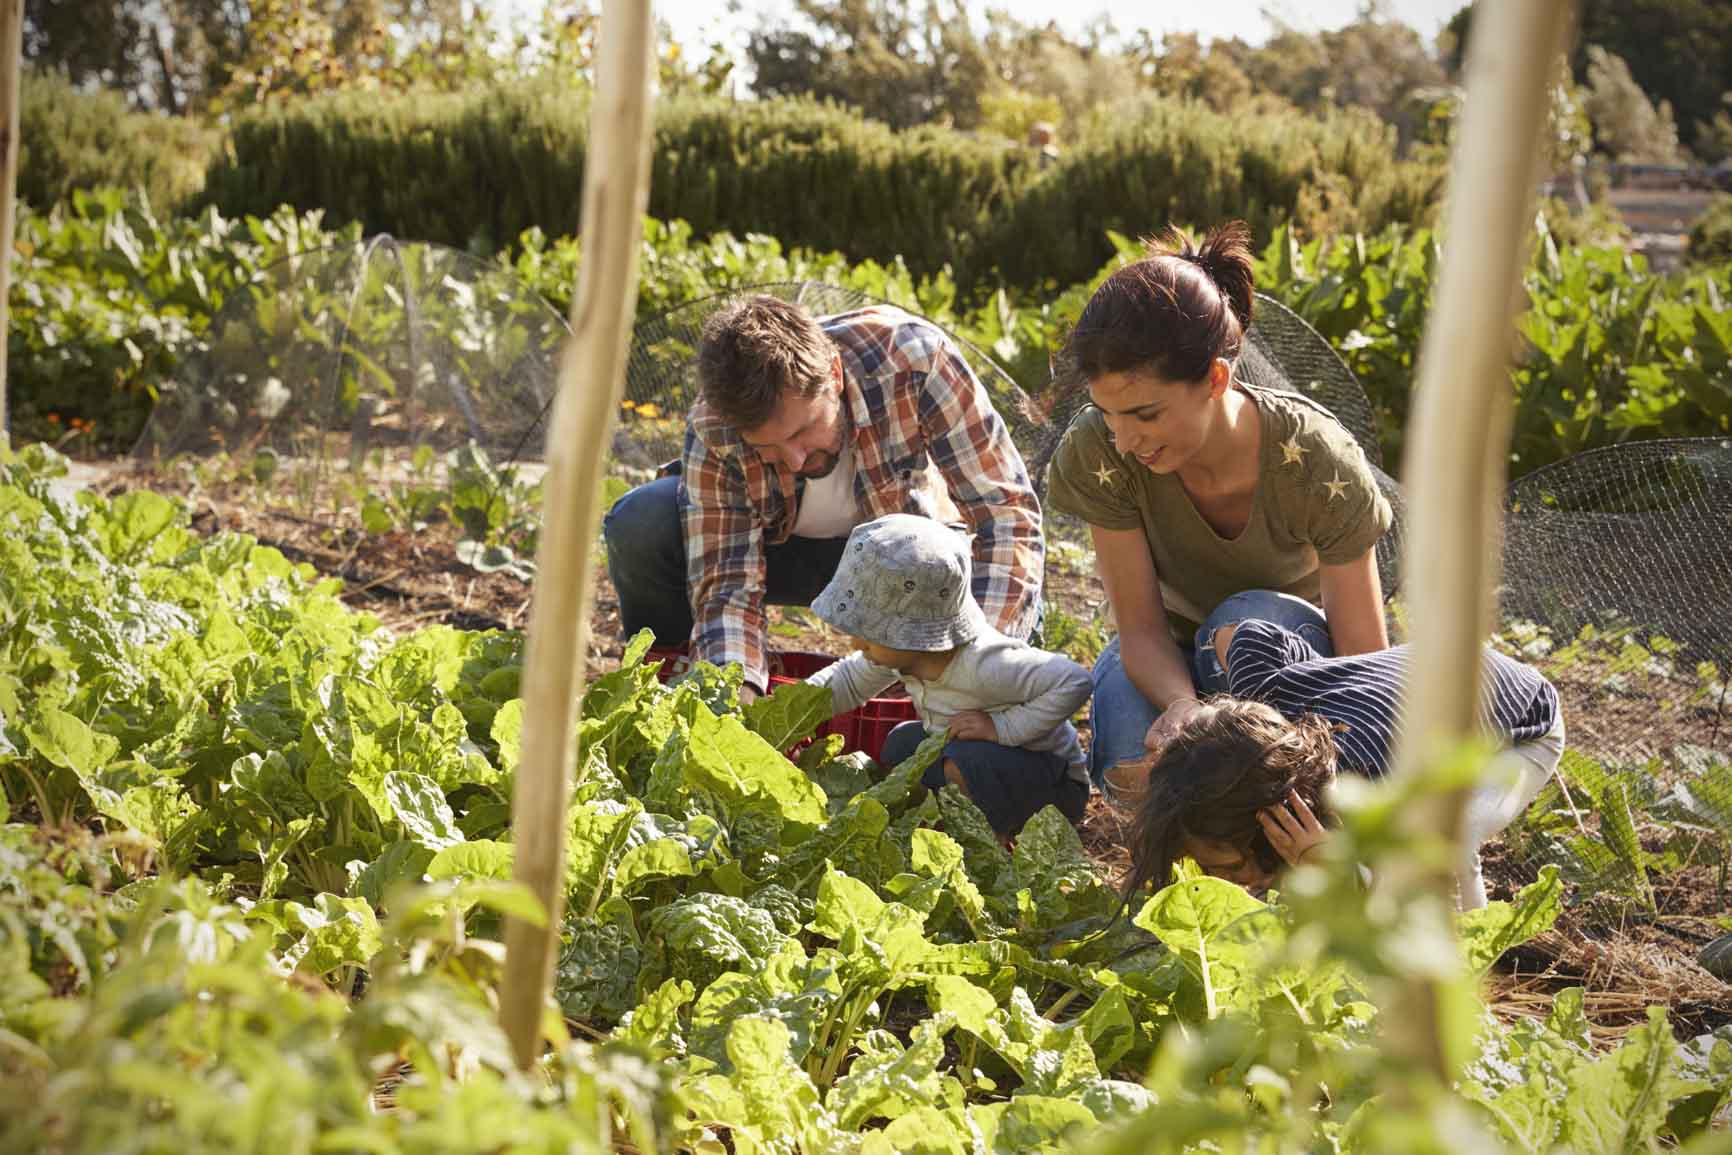 Mother and Father with young children bent low in vegetable garden